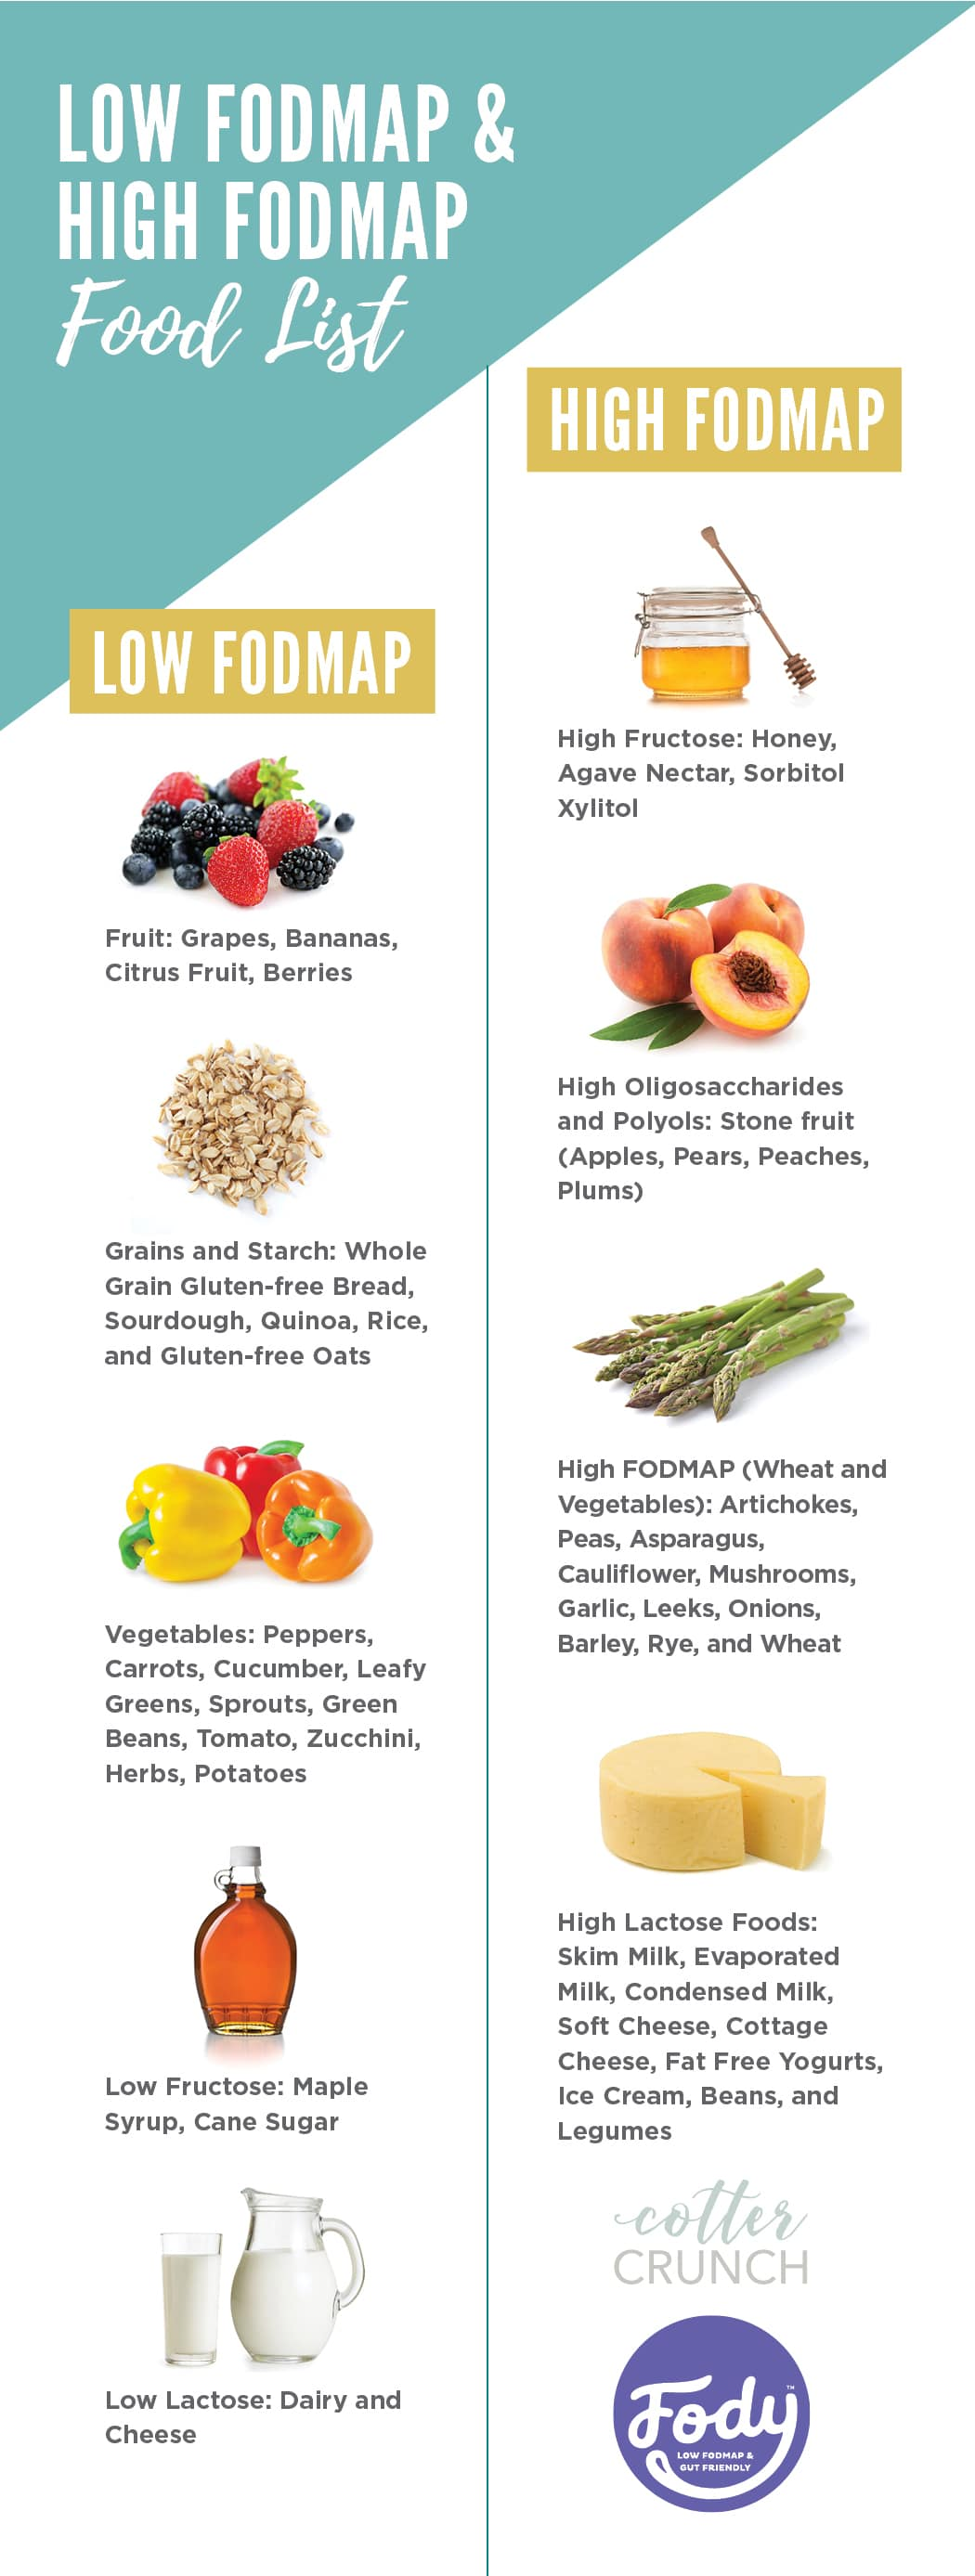 Pin image for low and high fodmap foods